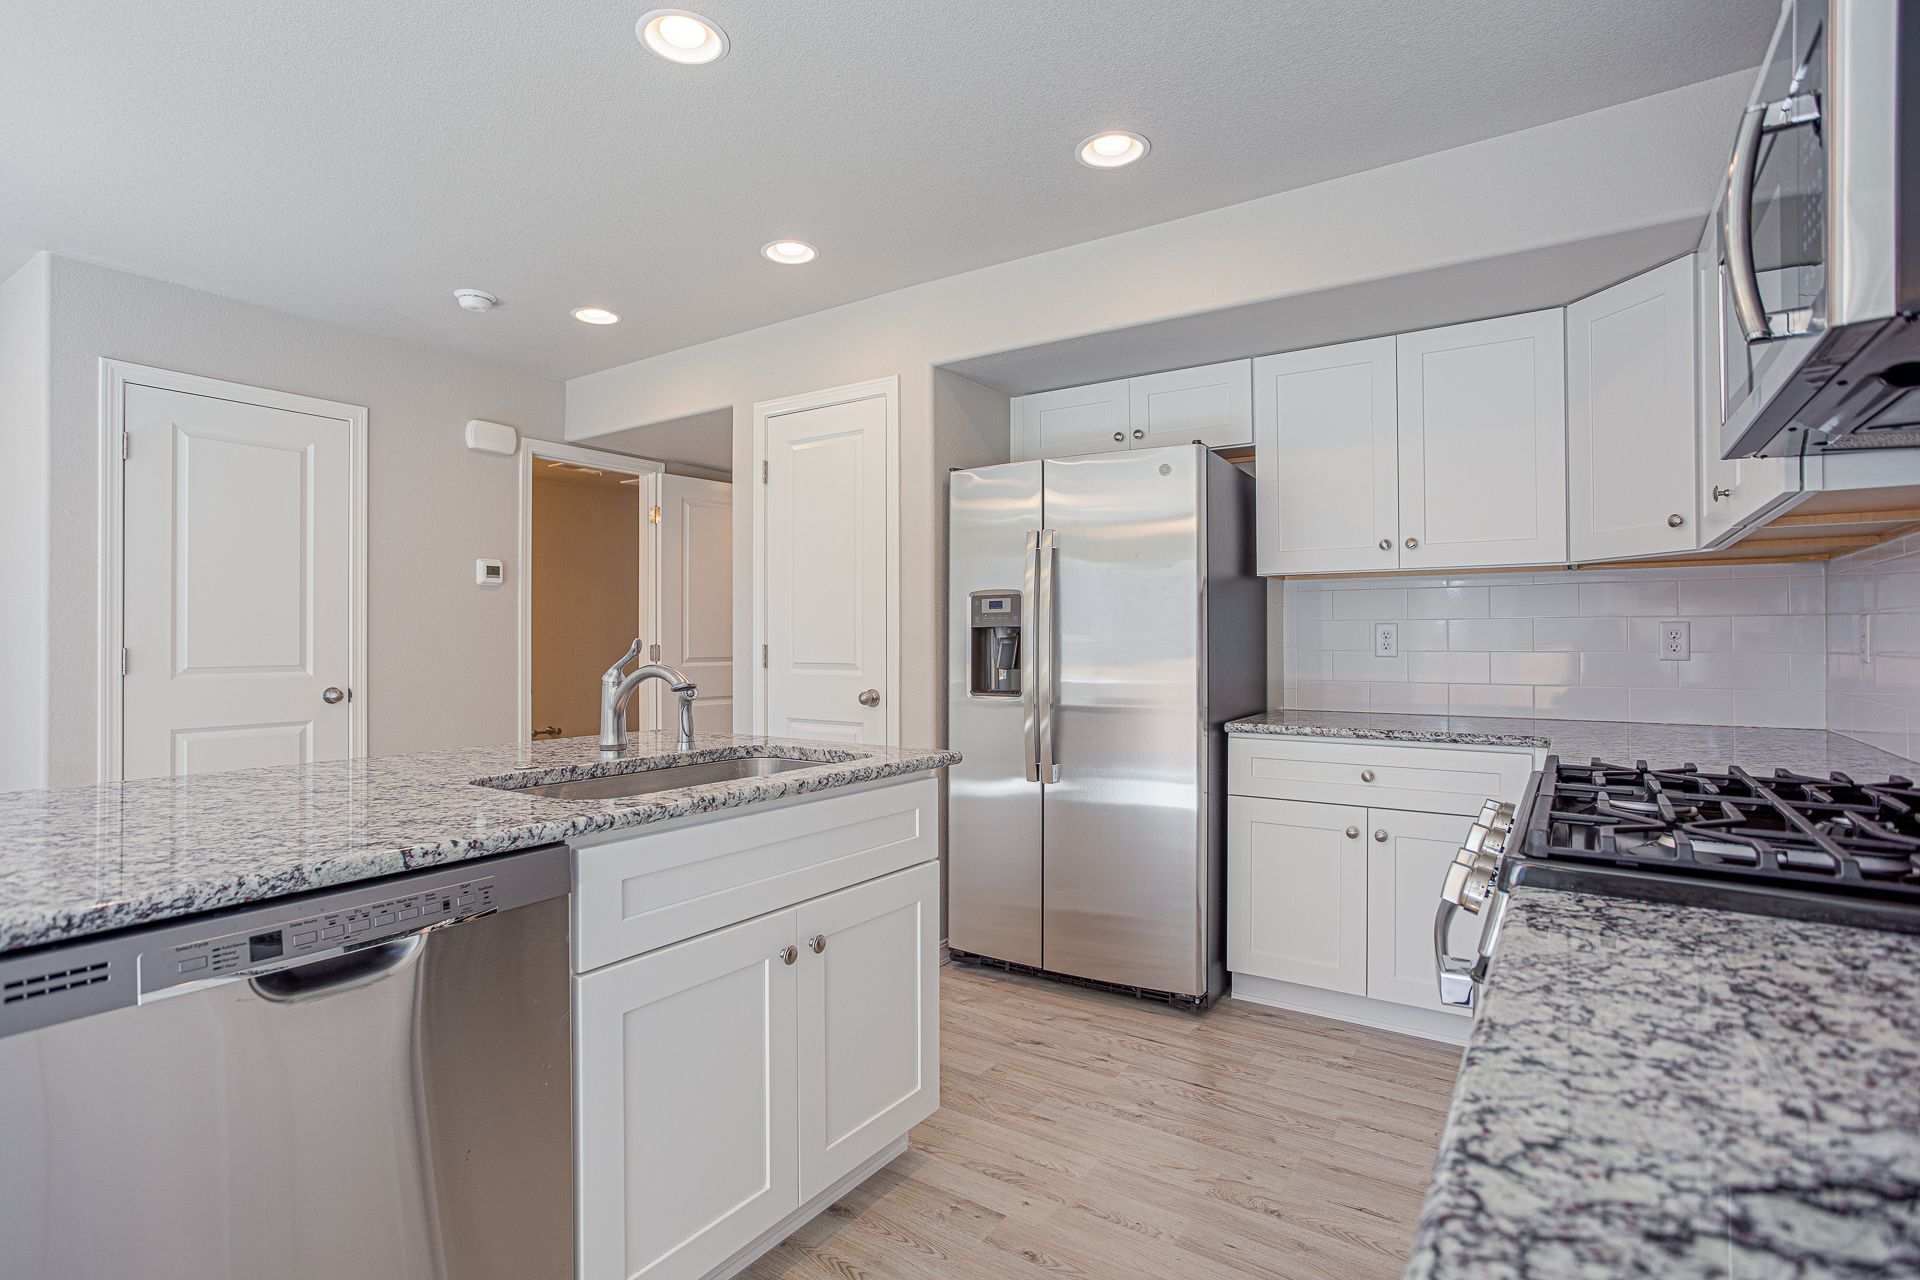 Kitchen featured in The Belford By Challenger Homes in Colorado Springs, CO